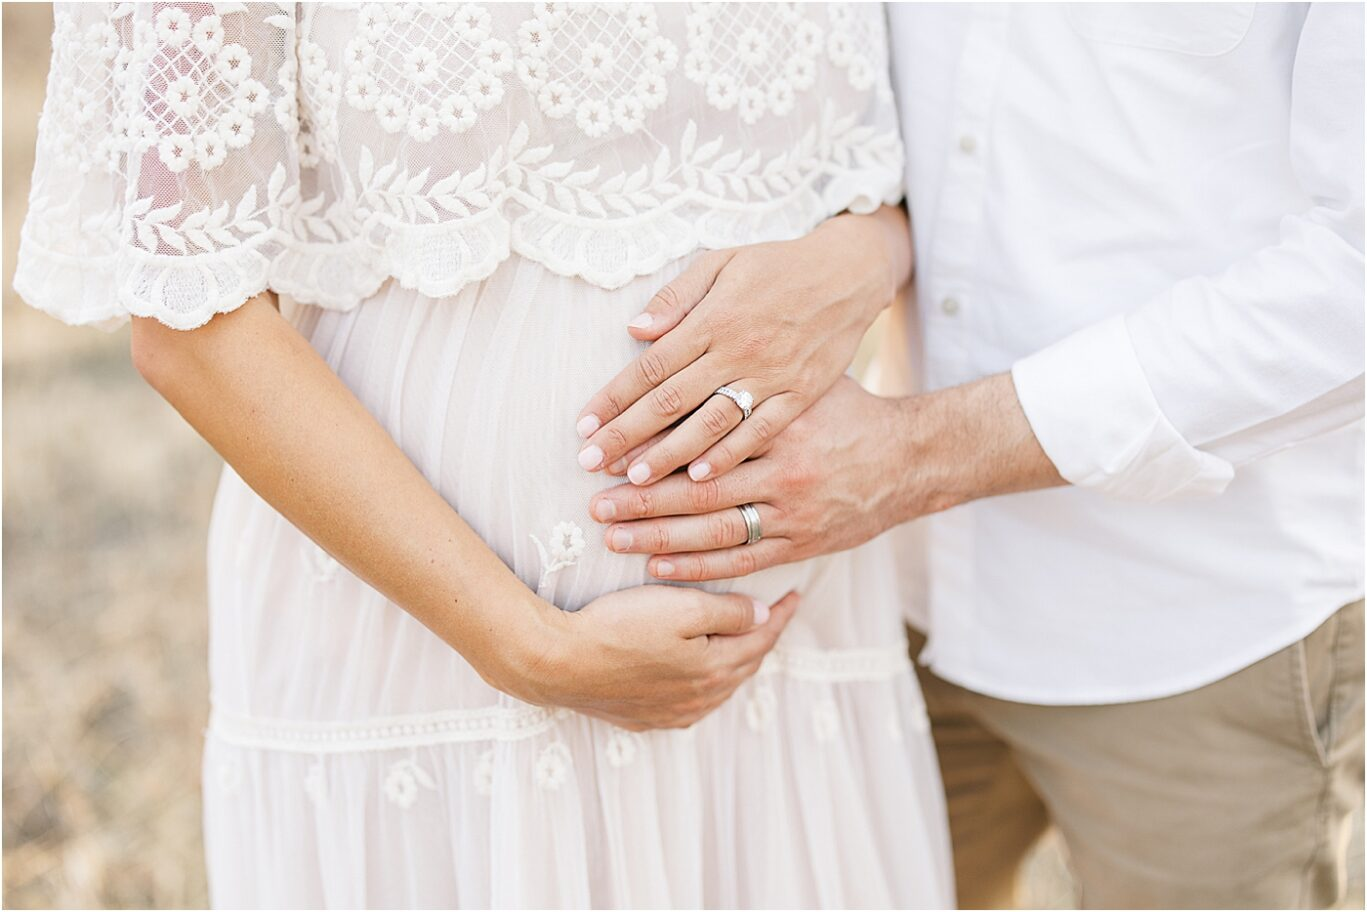 Maternity Session with Lindsay Konopa Photography in Fishers IN.